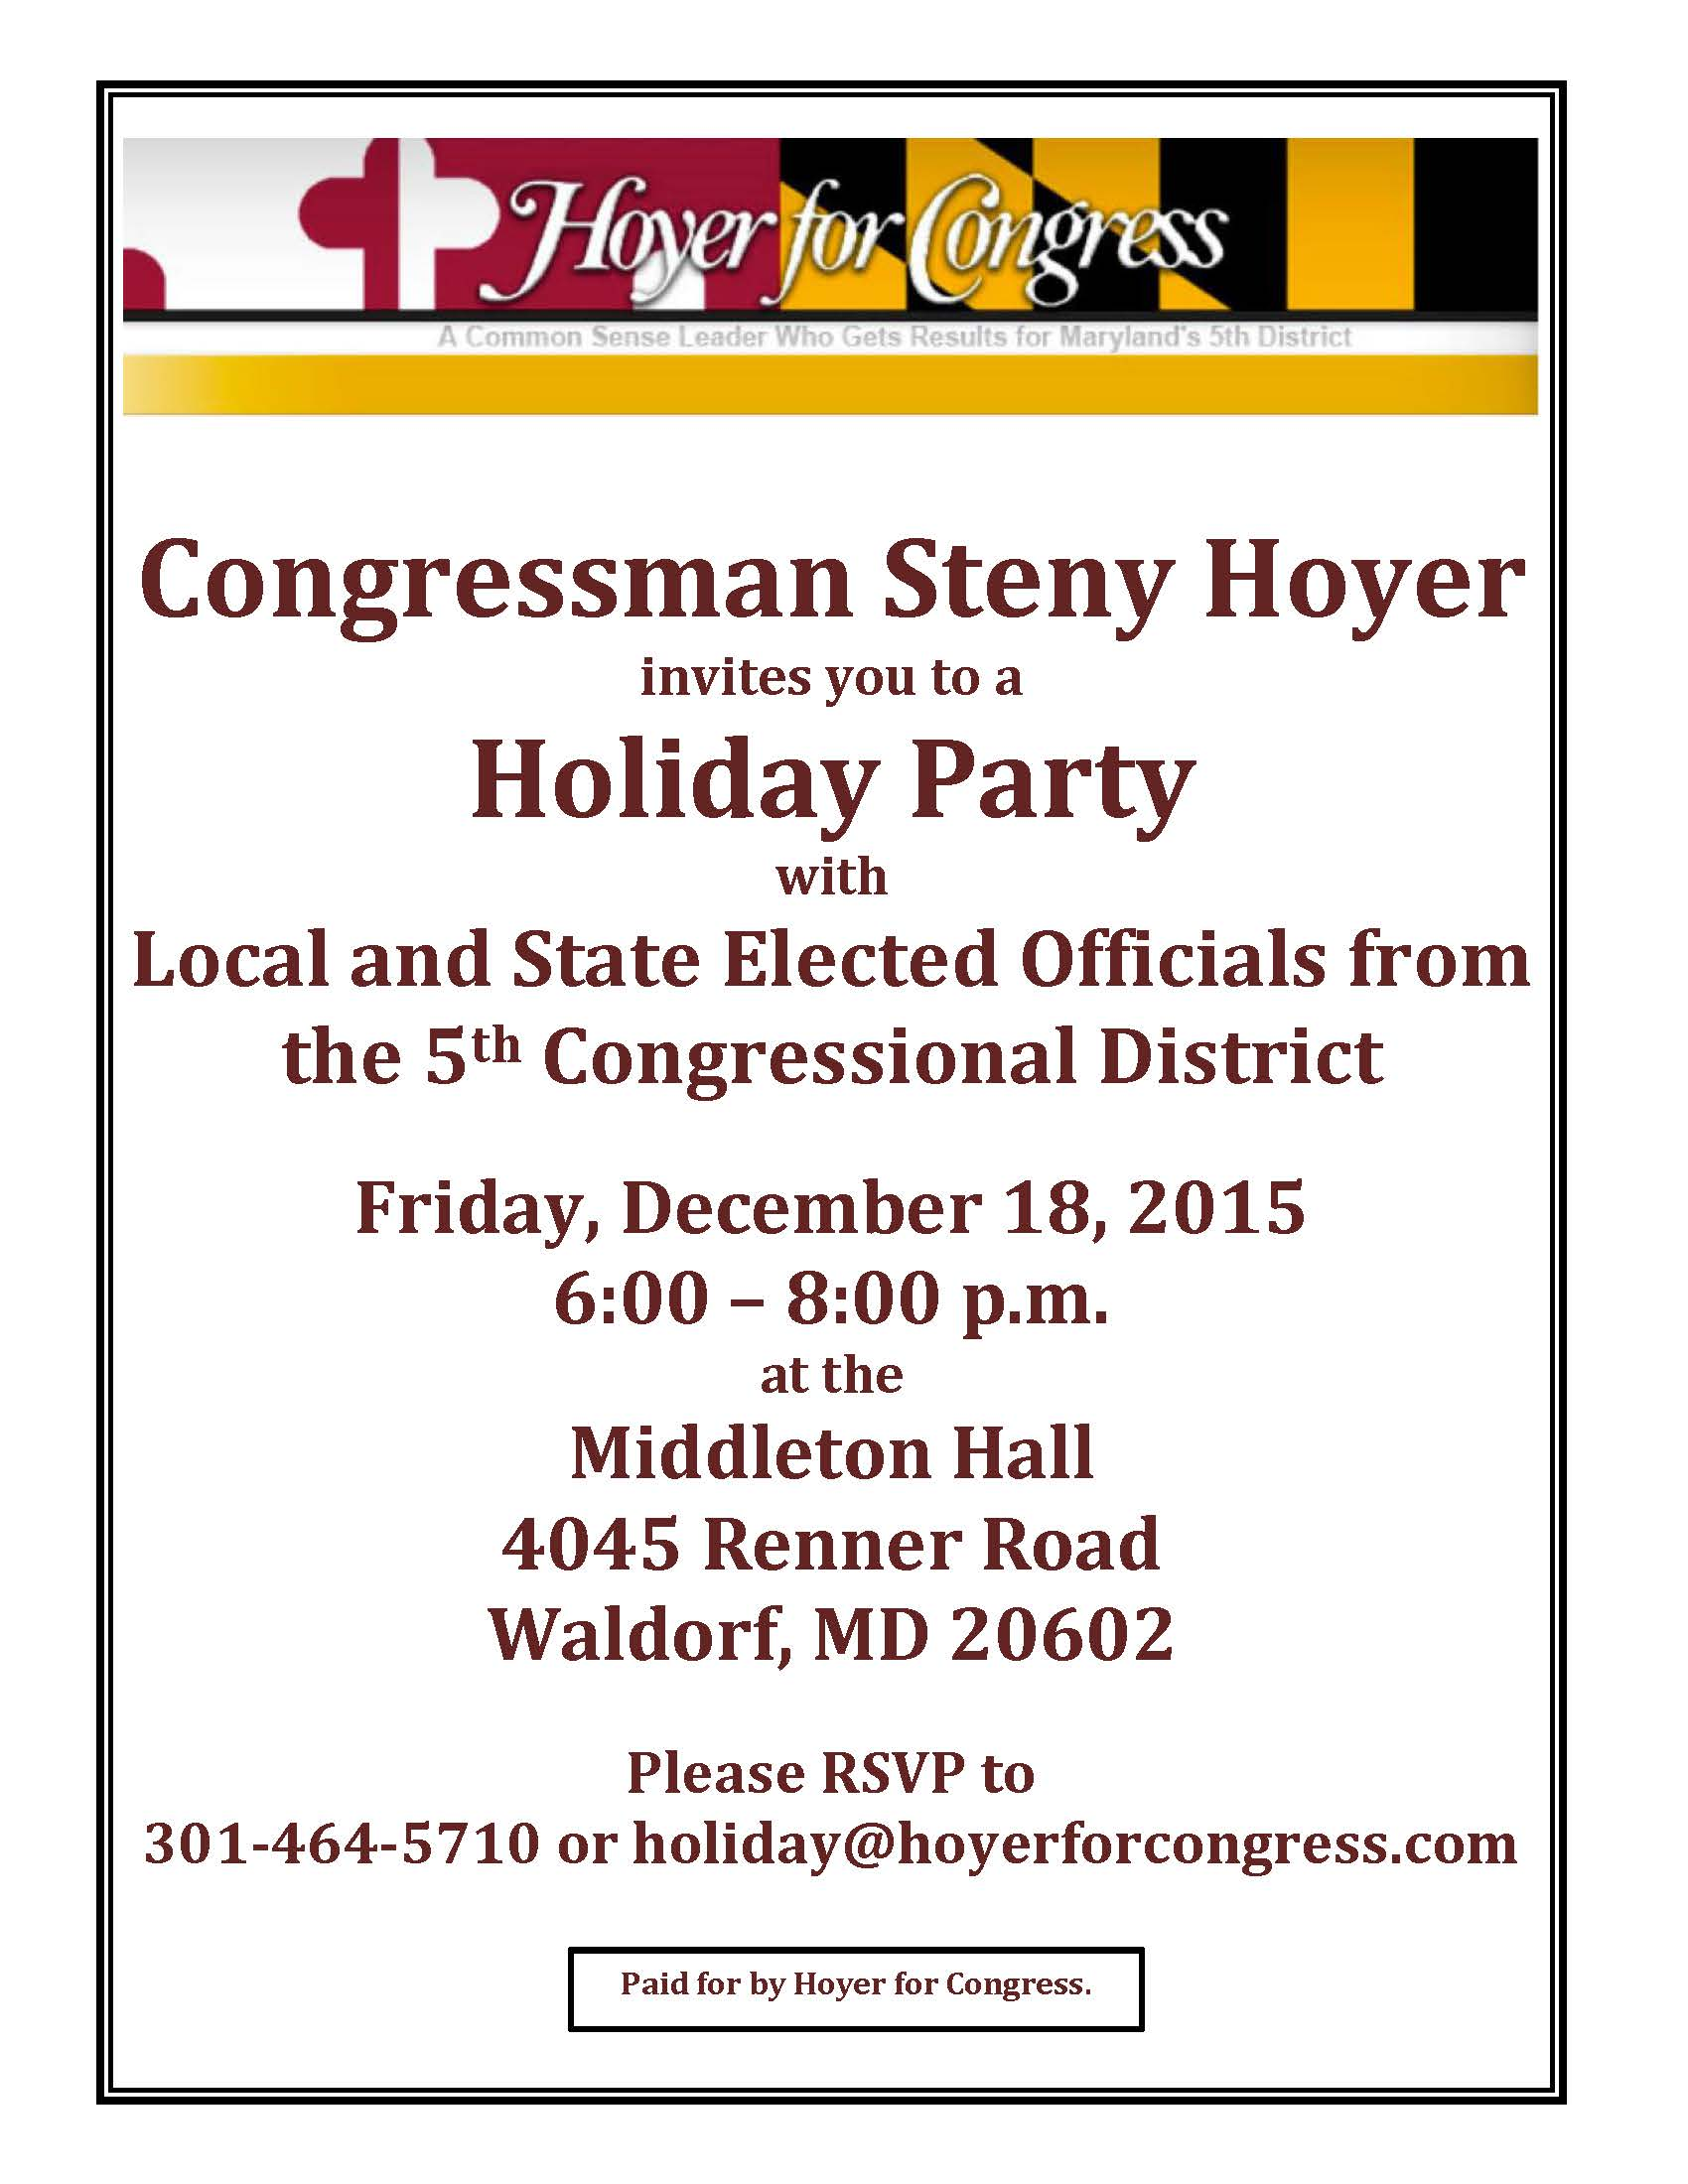 Holiday_Party_Invite_15.jpg